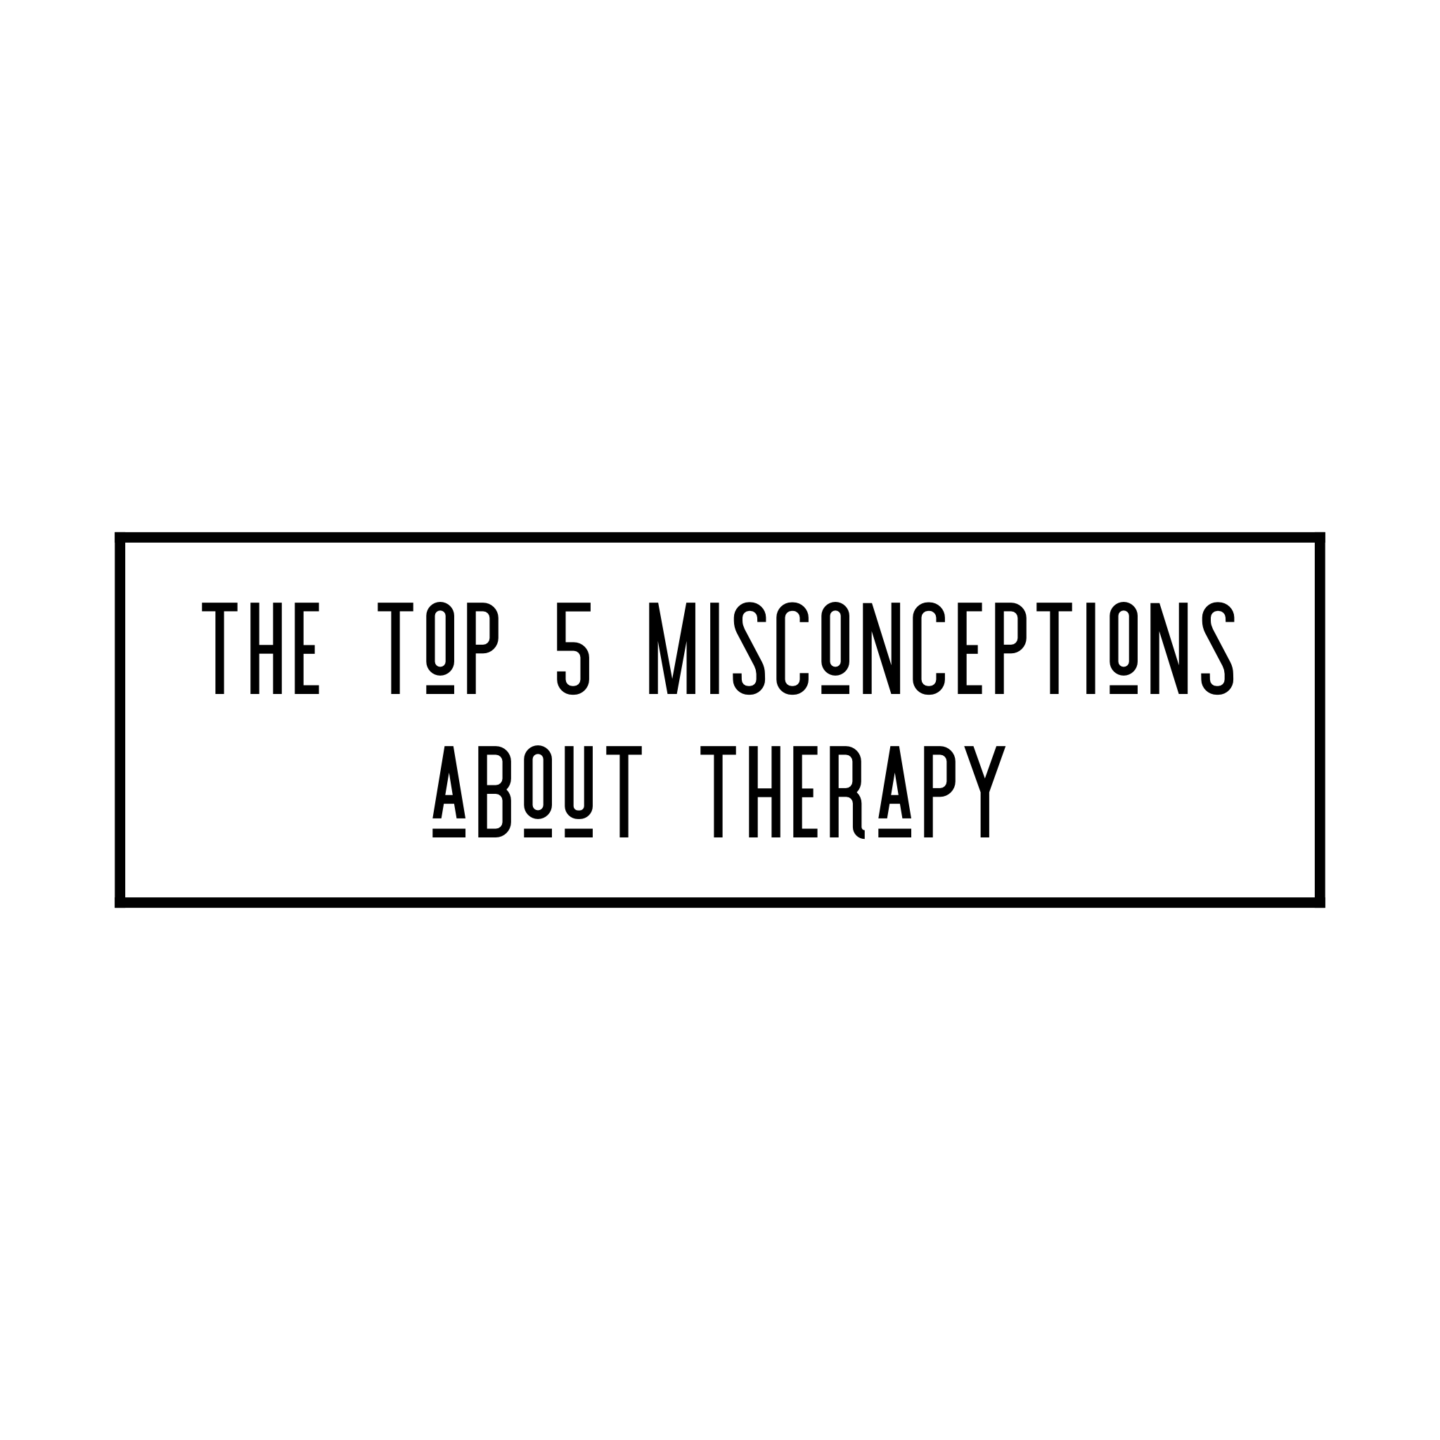 Top 5 Misconceptions about Therapy